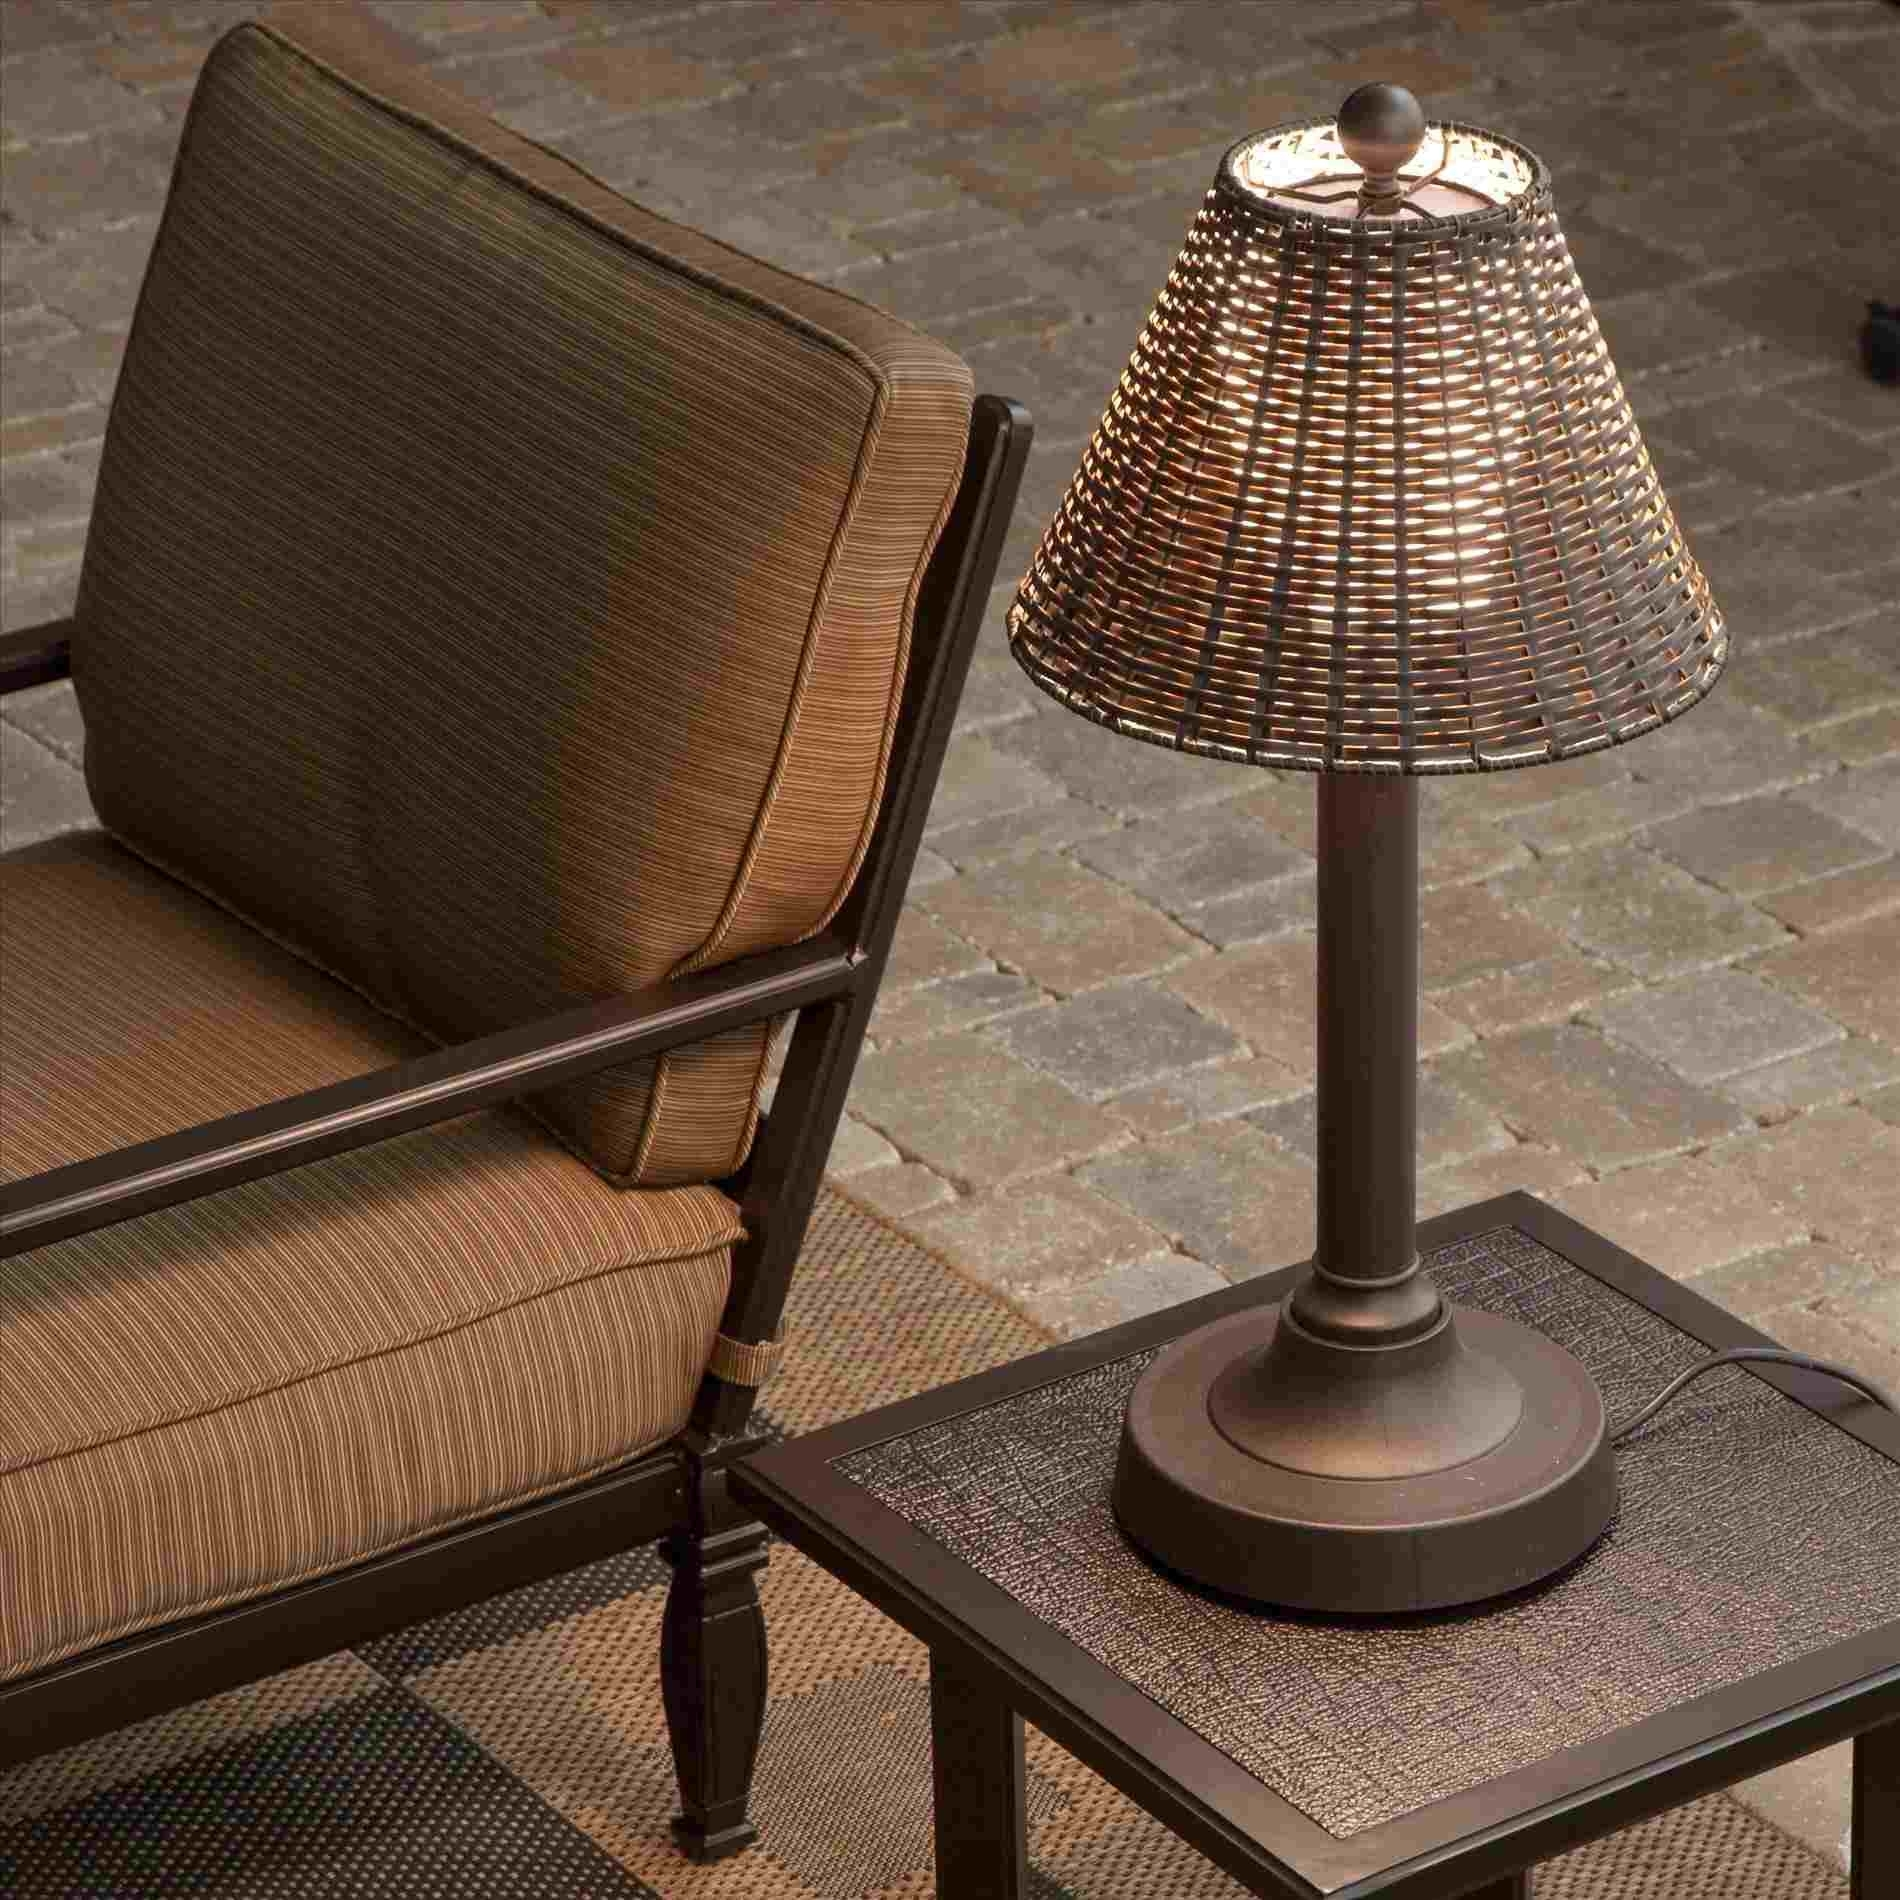 Red Rhfhpcmancom Lighting Diy Outdoor Lamp Shade Delightful Pendant Throughout Outdoor Lanterns For Tables (View 17 of 20)